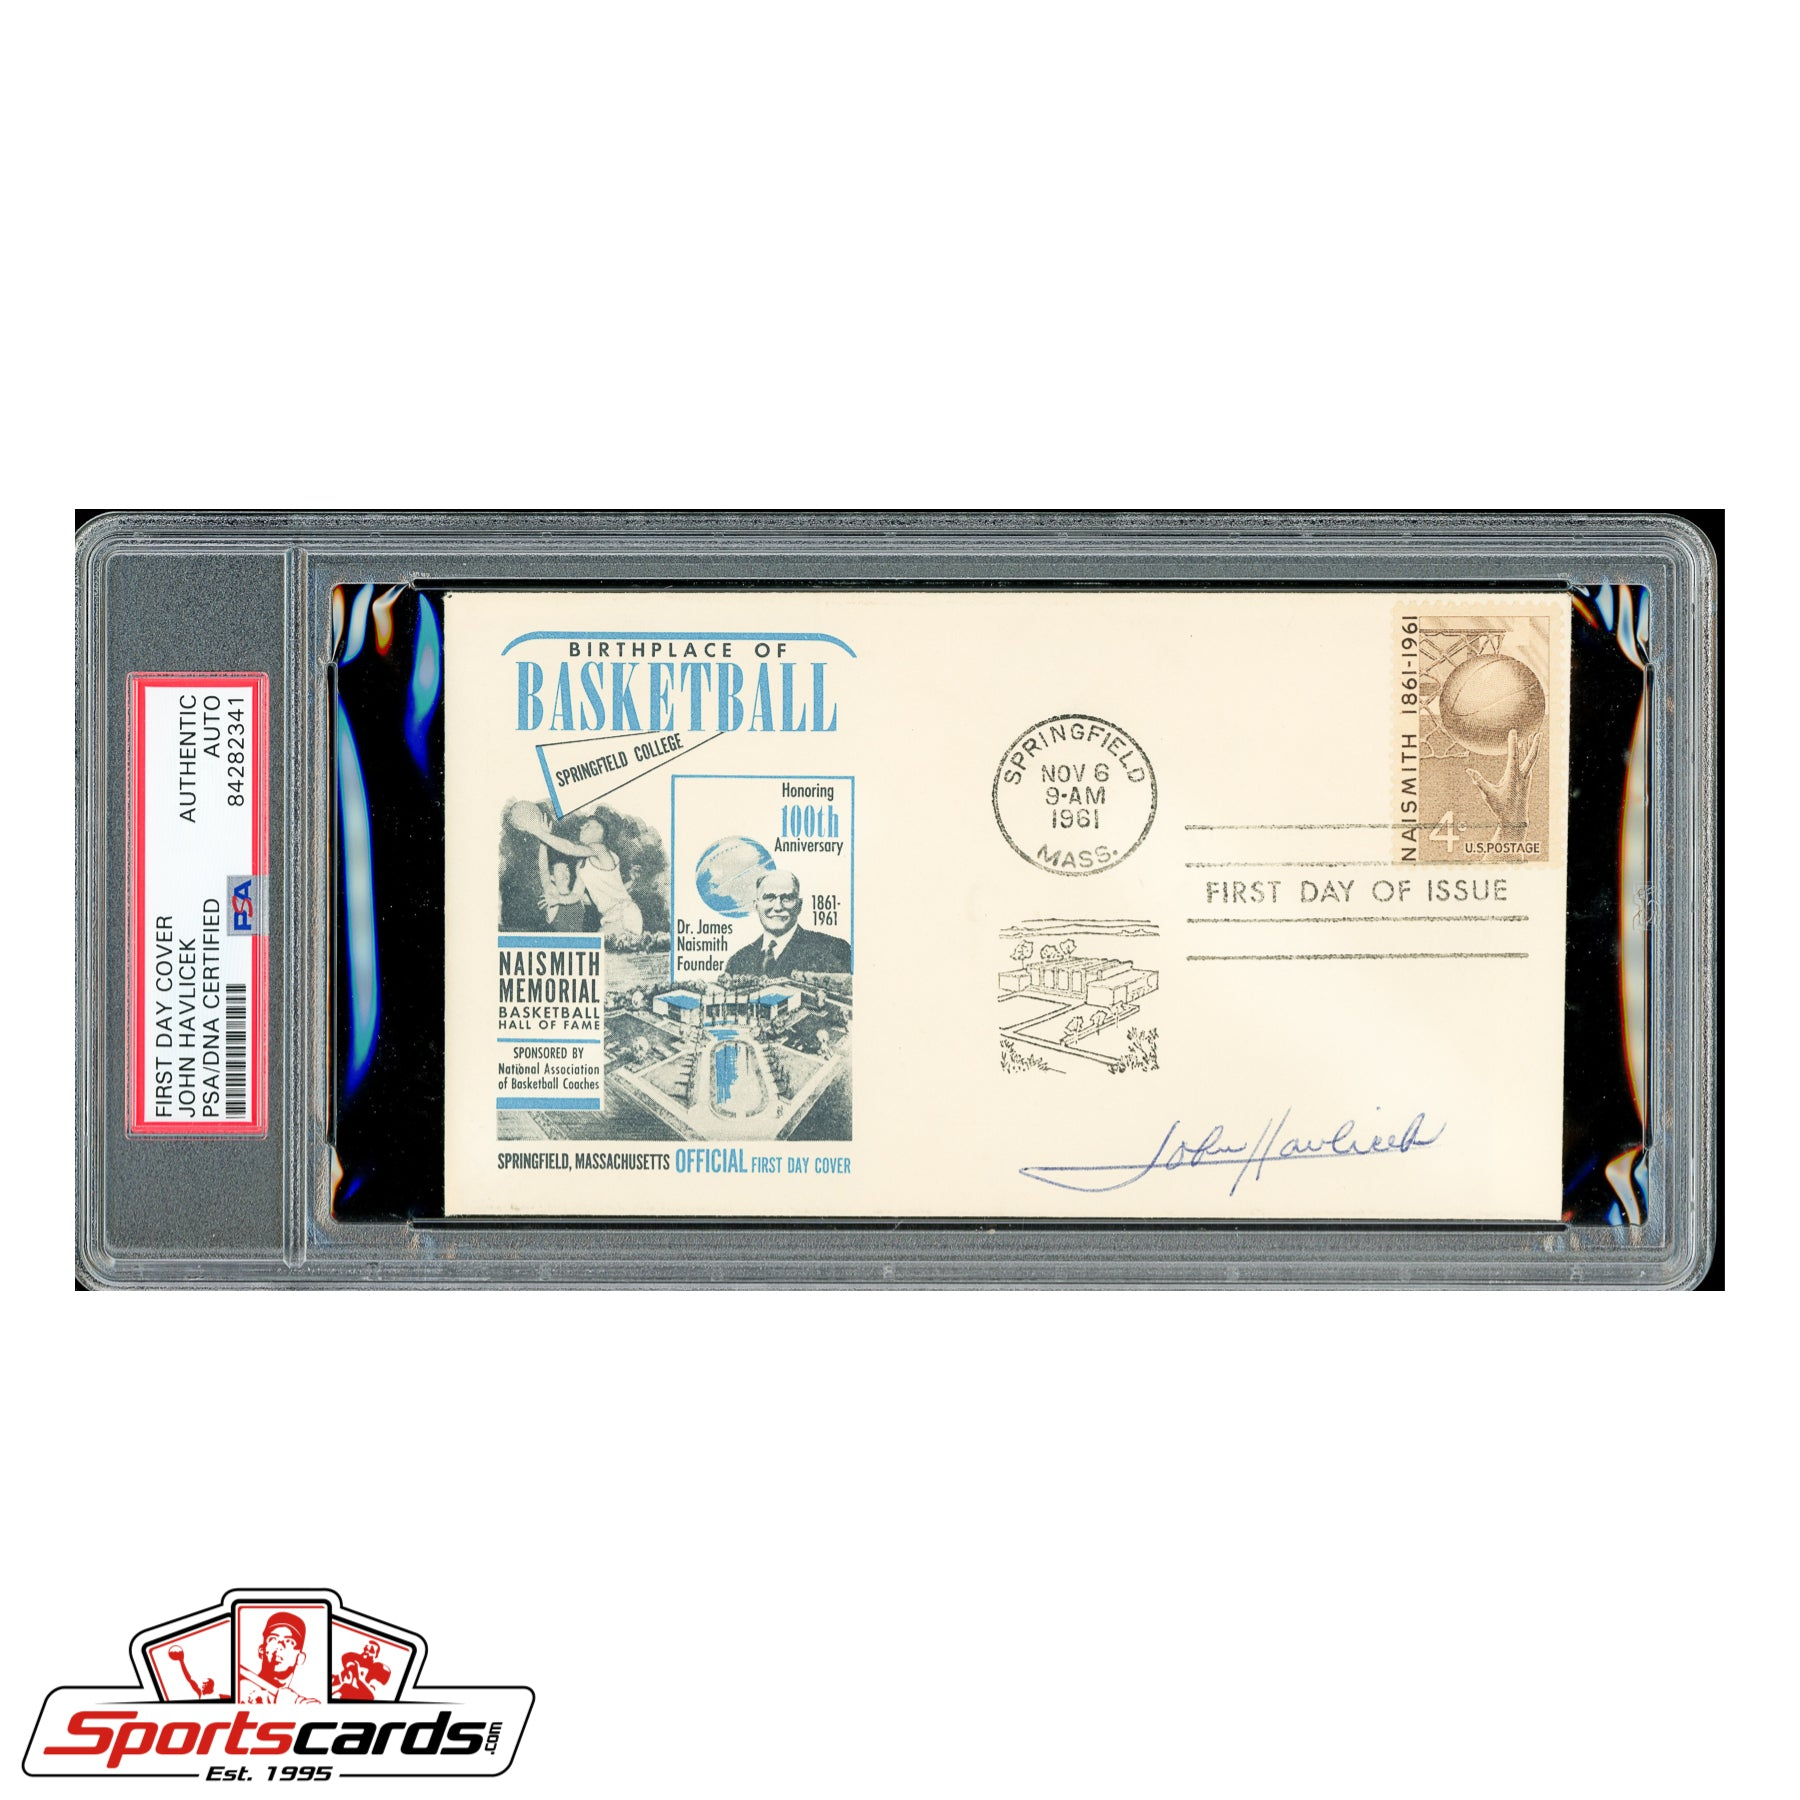 John Havlicek Signed Auto 1961 Naismith Basketball HOF FDC - PSA/DNA